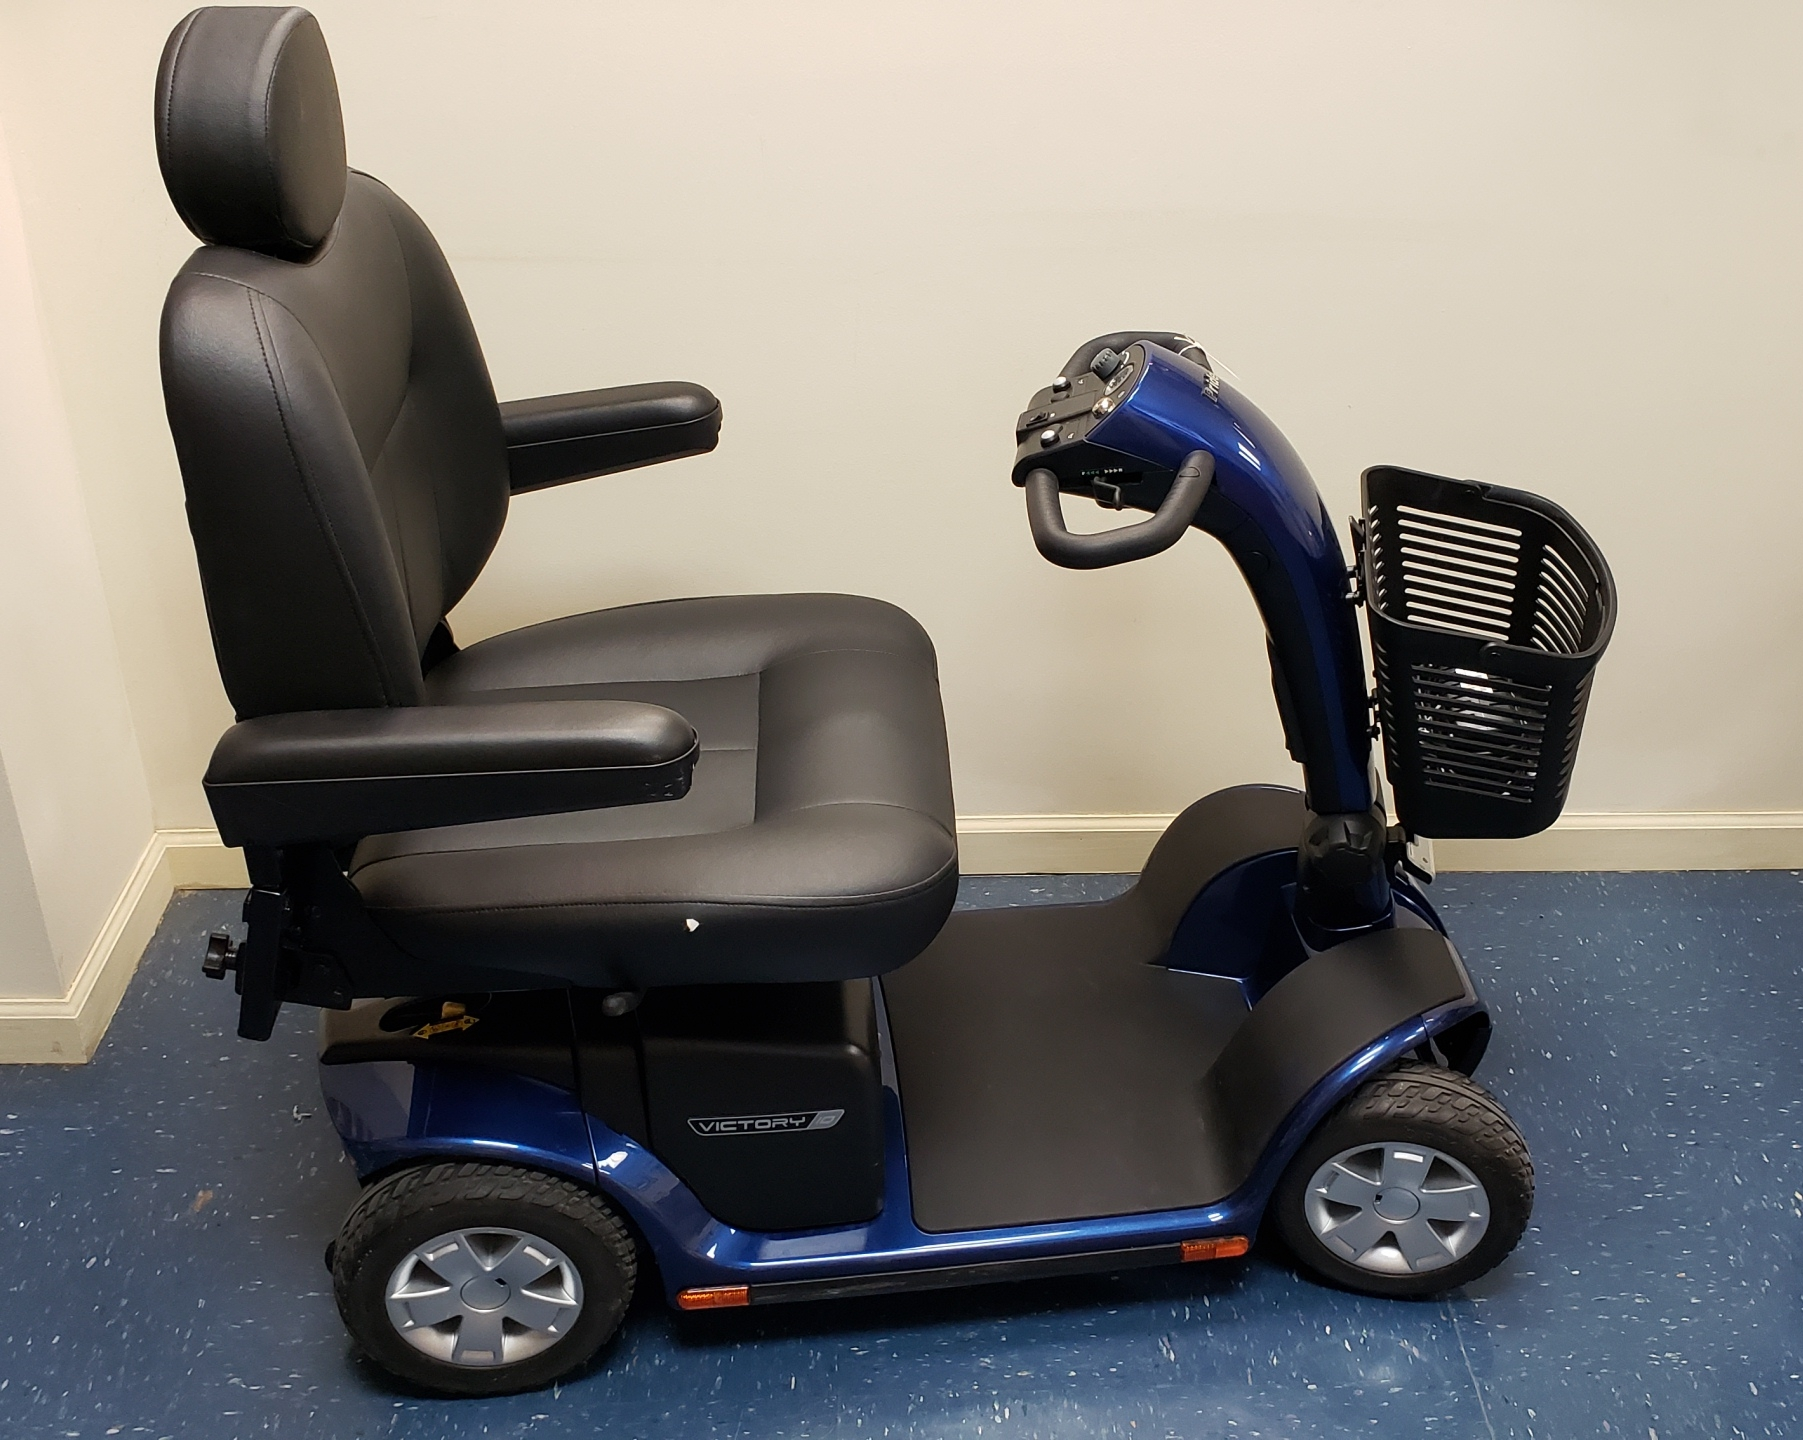 PRIDE - VICTORY 10 - 4 WHEELED HANDICAP SCOOTER